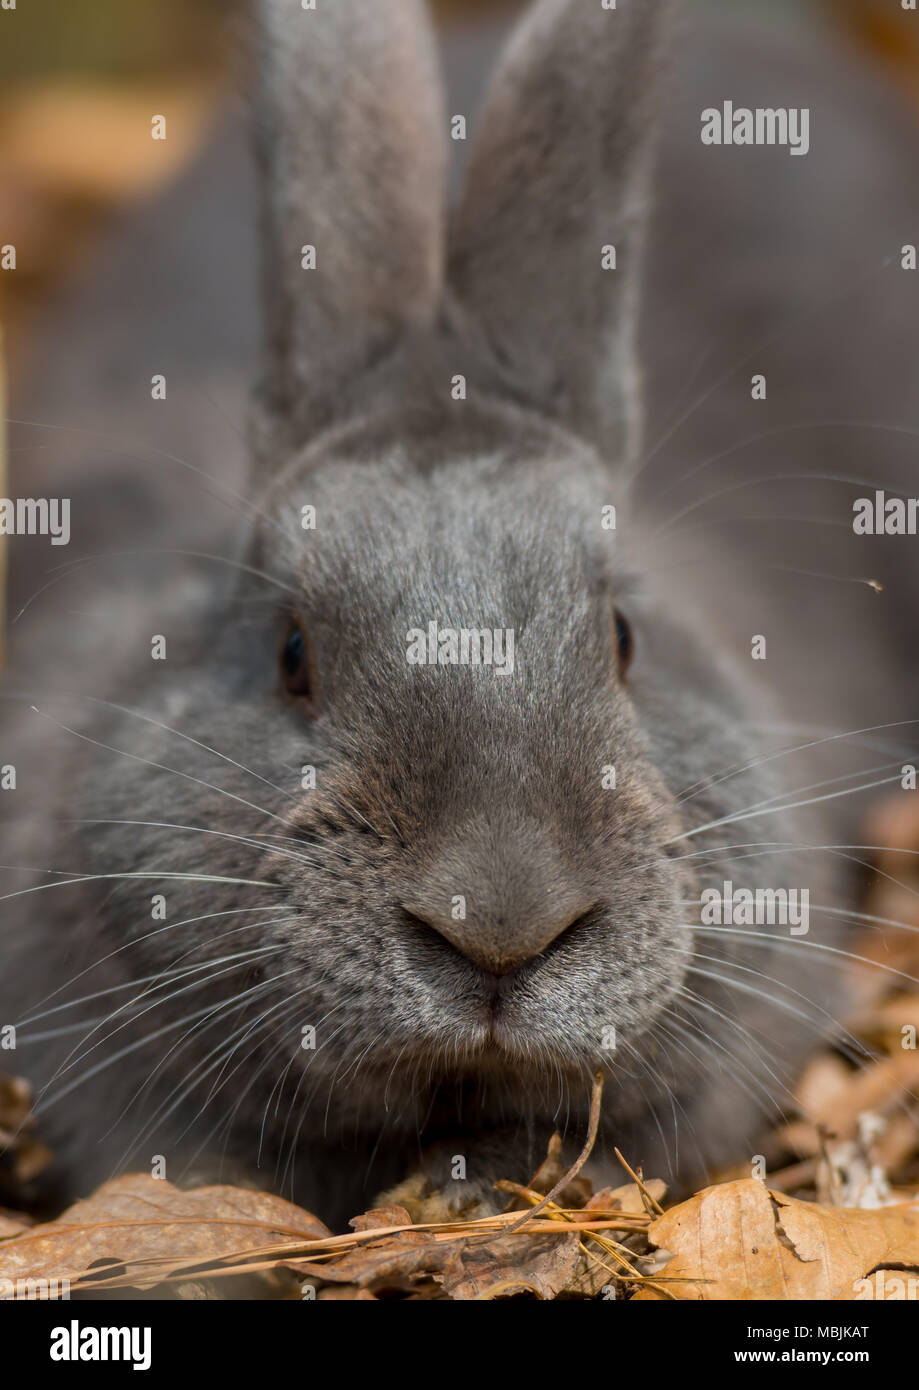 Dark Gray Rabbit Looks at Camera while sitting in leaves - Stock Image